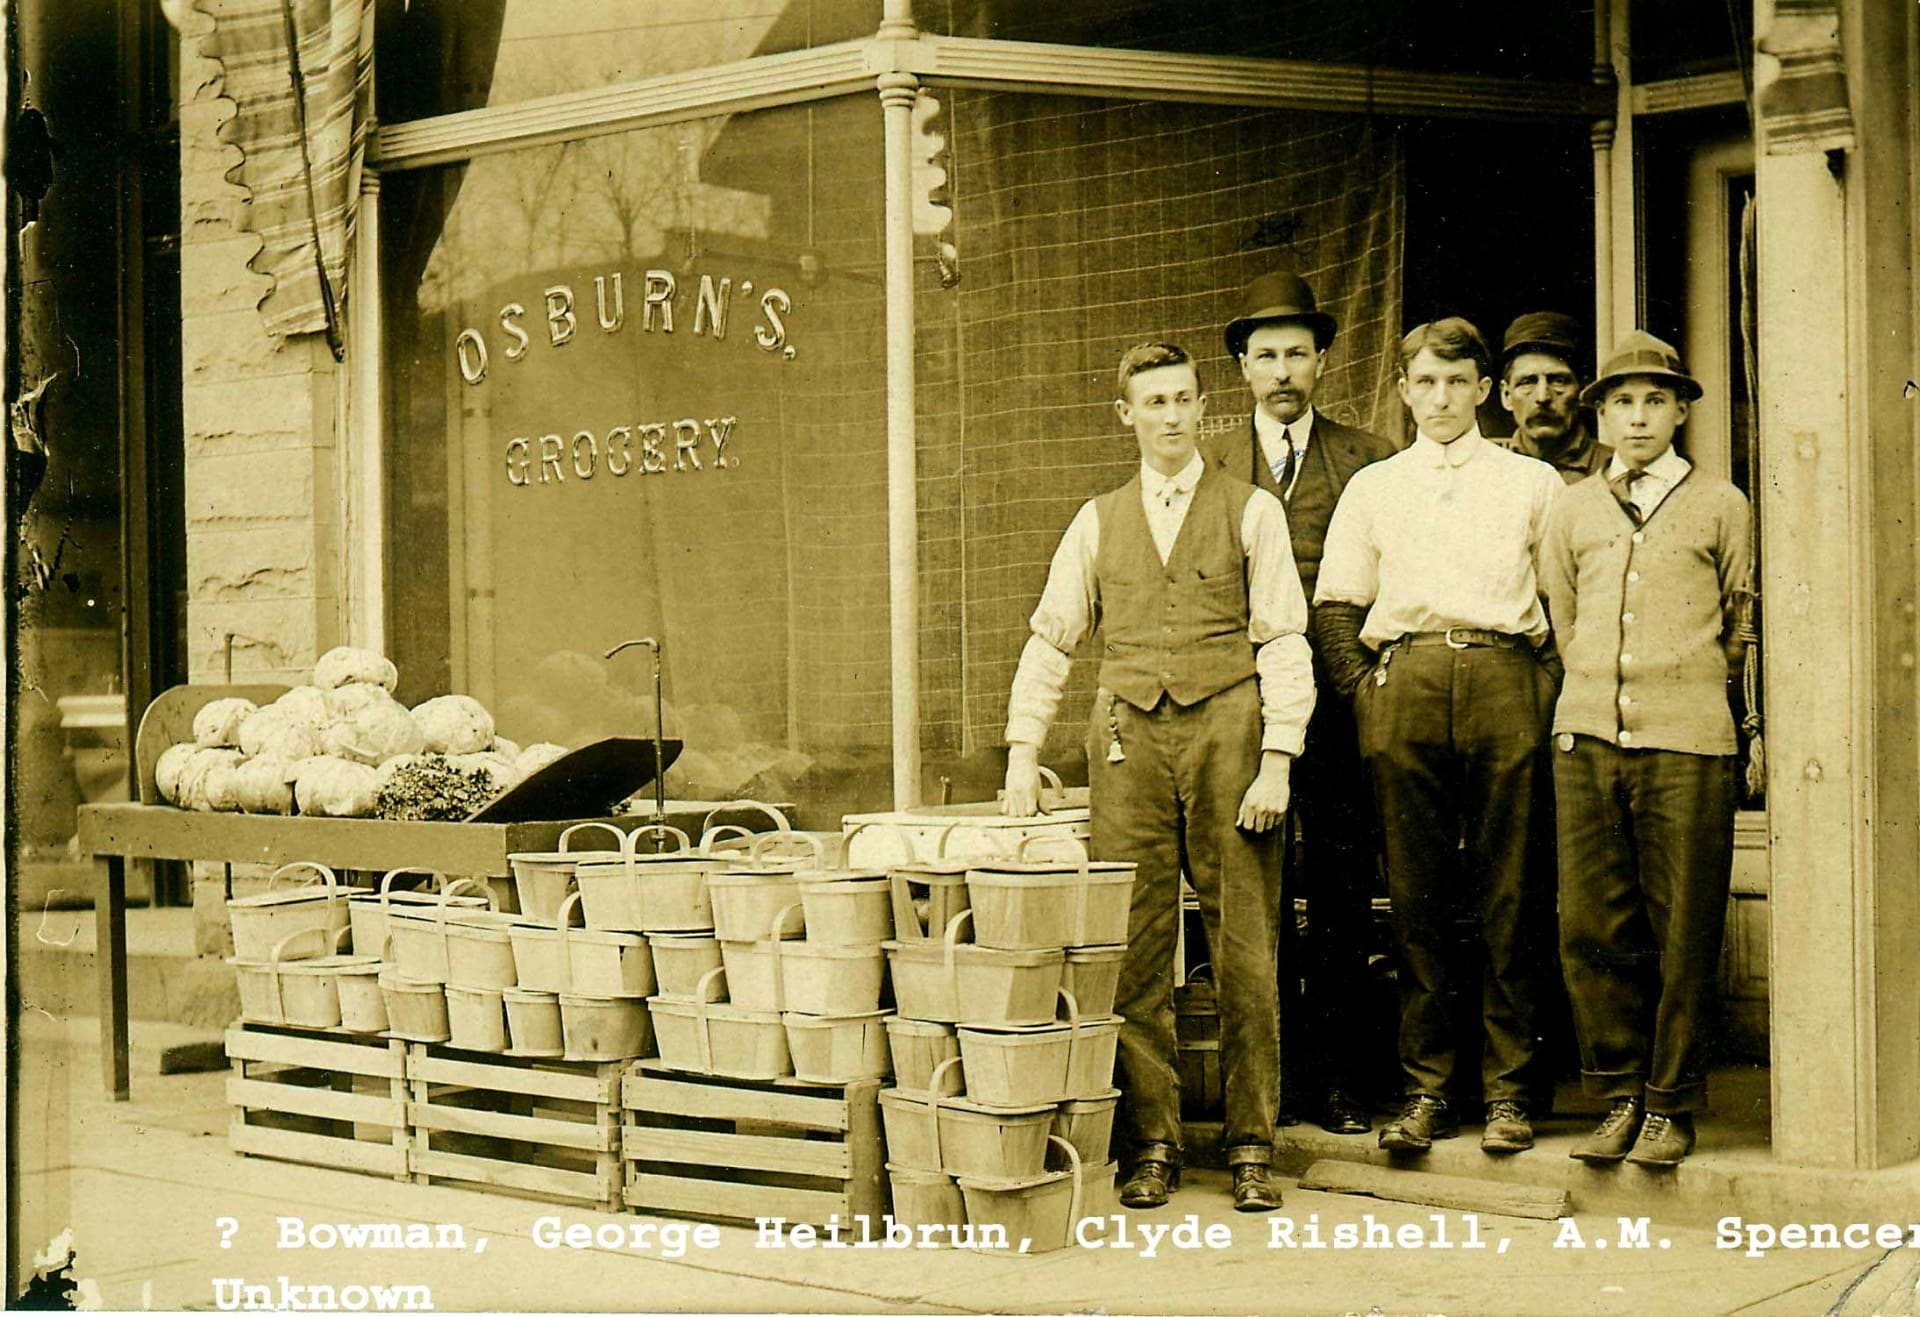 osburns-grocery-with-names-w1920.jpg